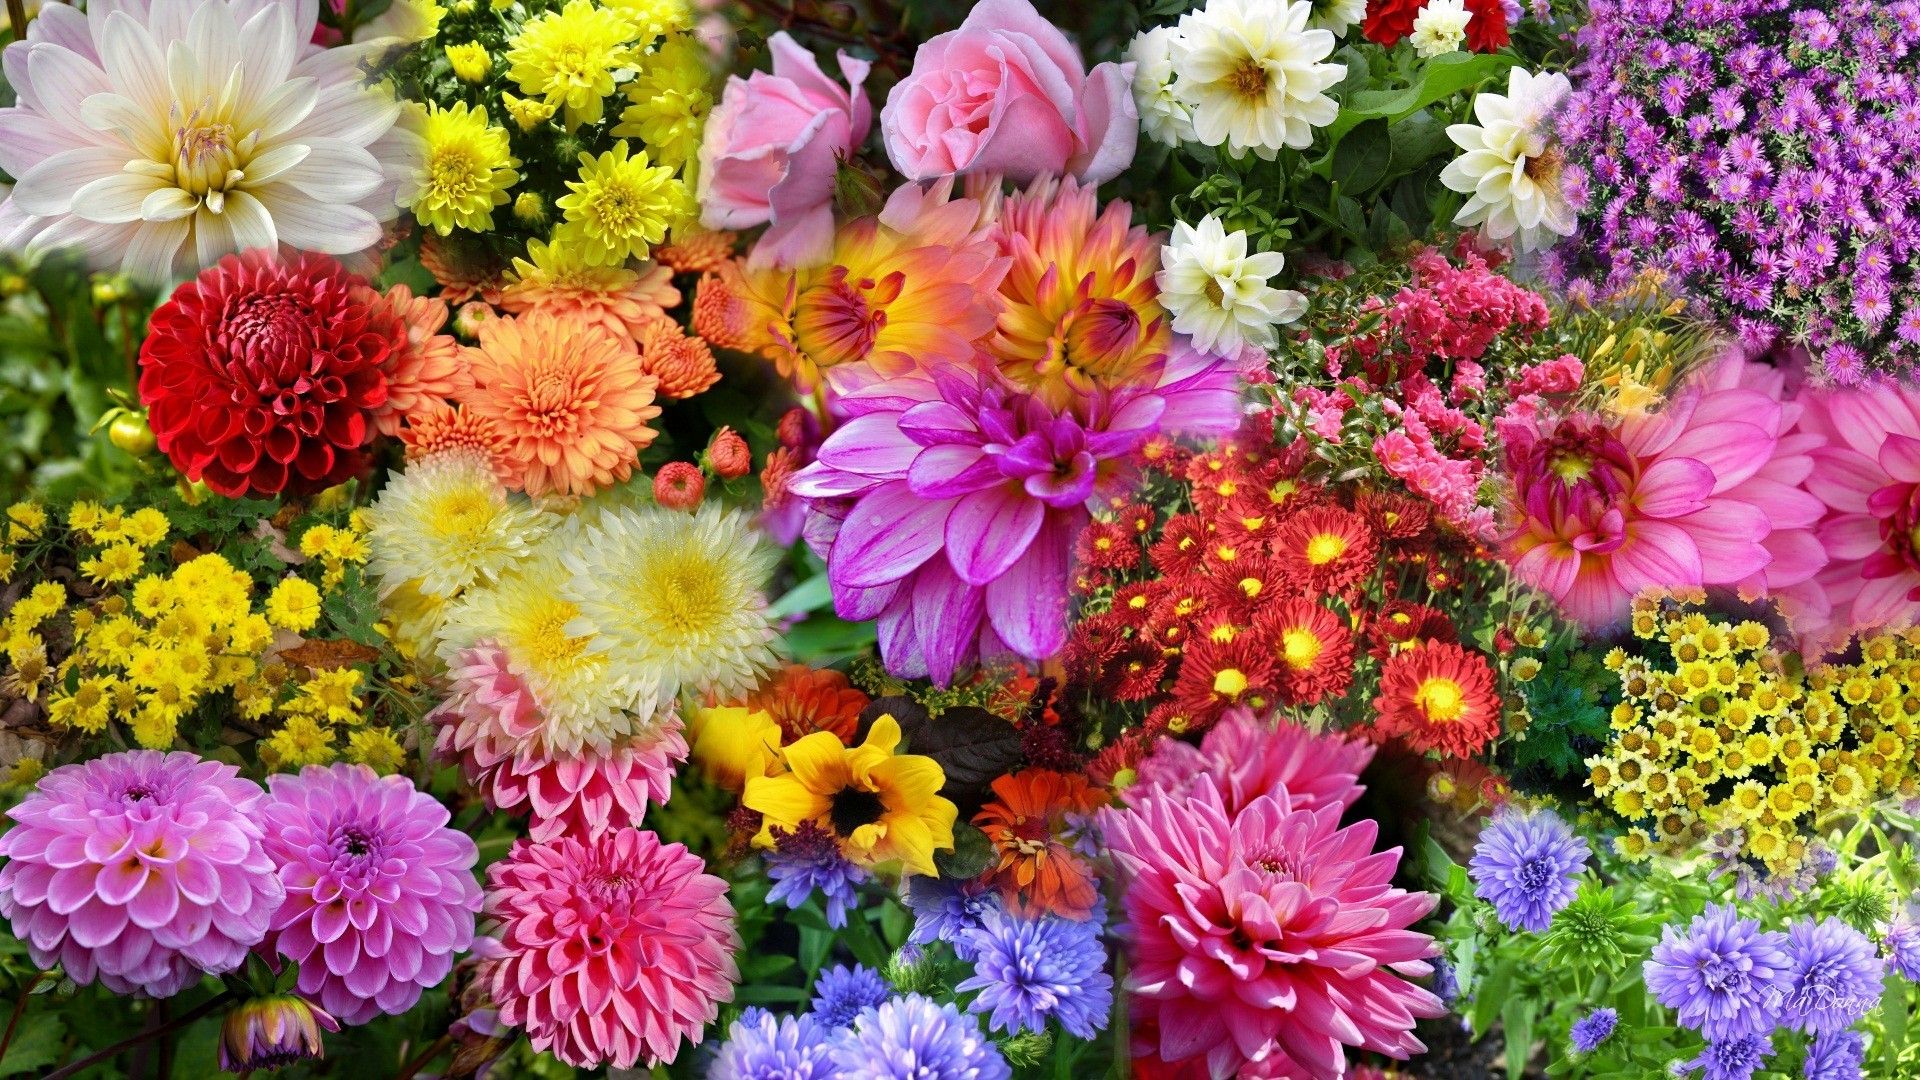 Plenty Tag – Autumn Garden Colorful Flowers Pink Lavender Roses Summer  Collage Fall Red Bright Mums